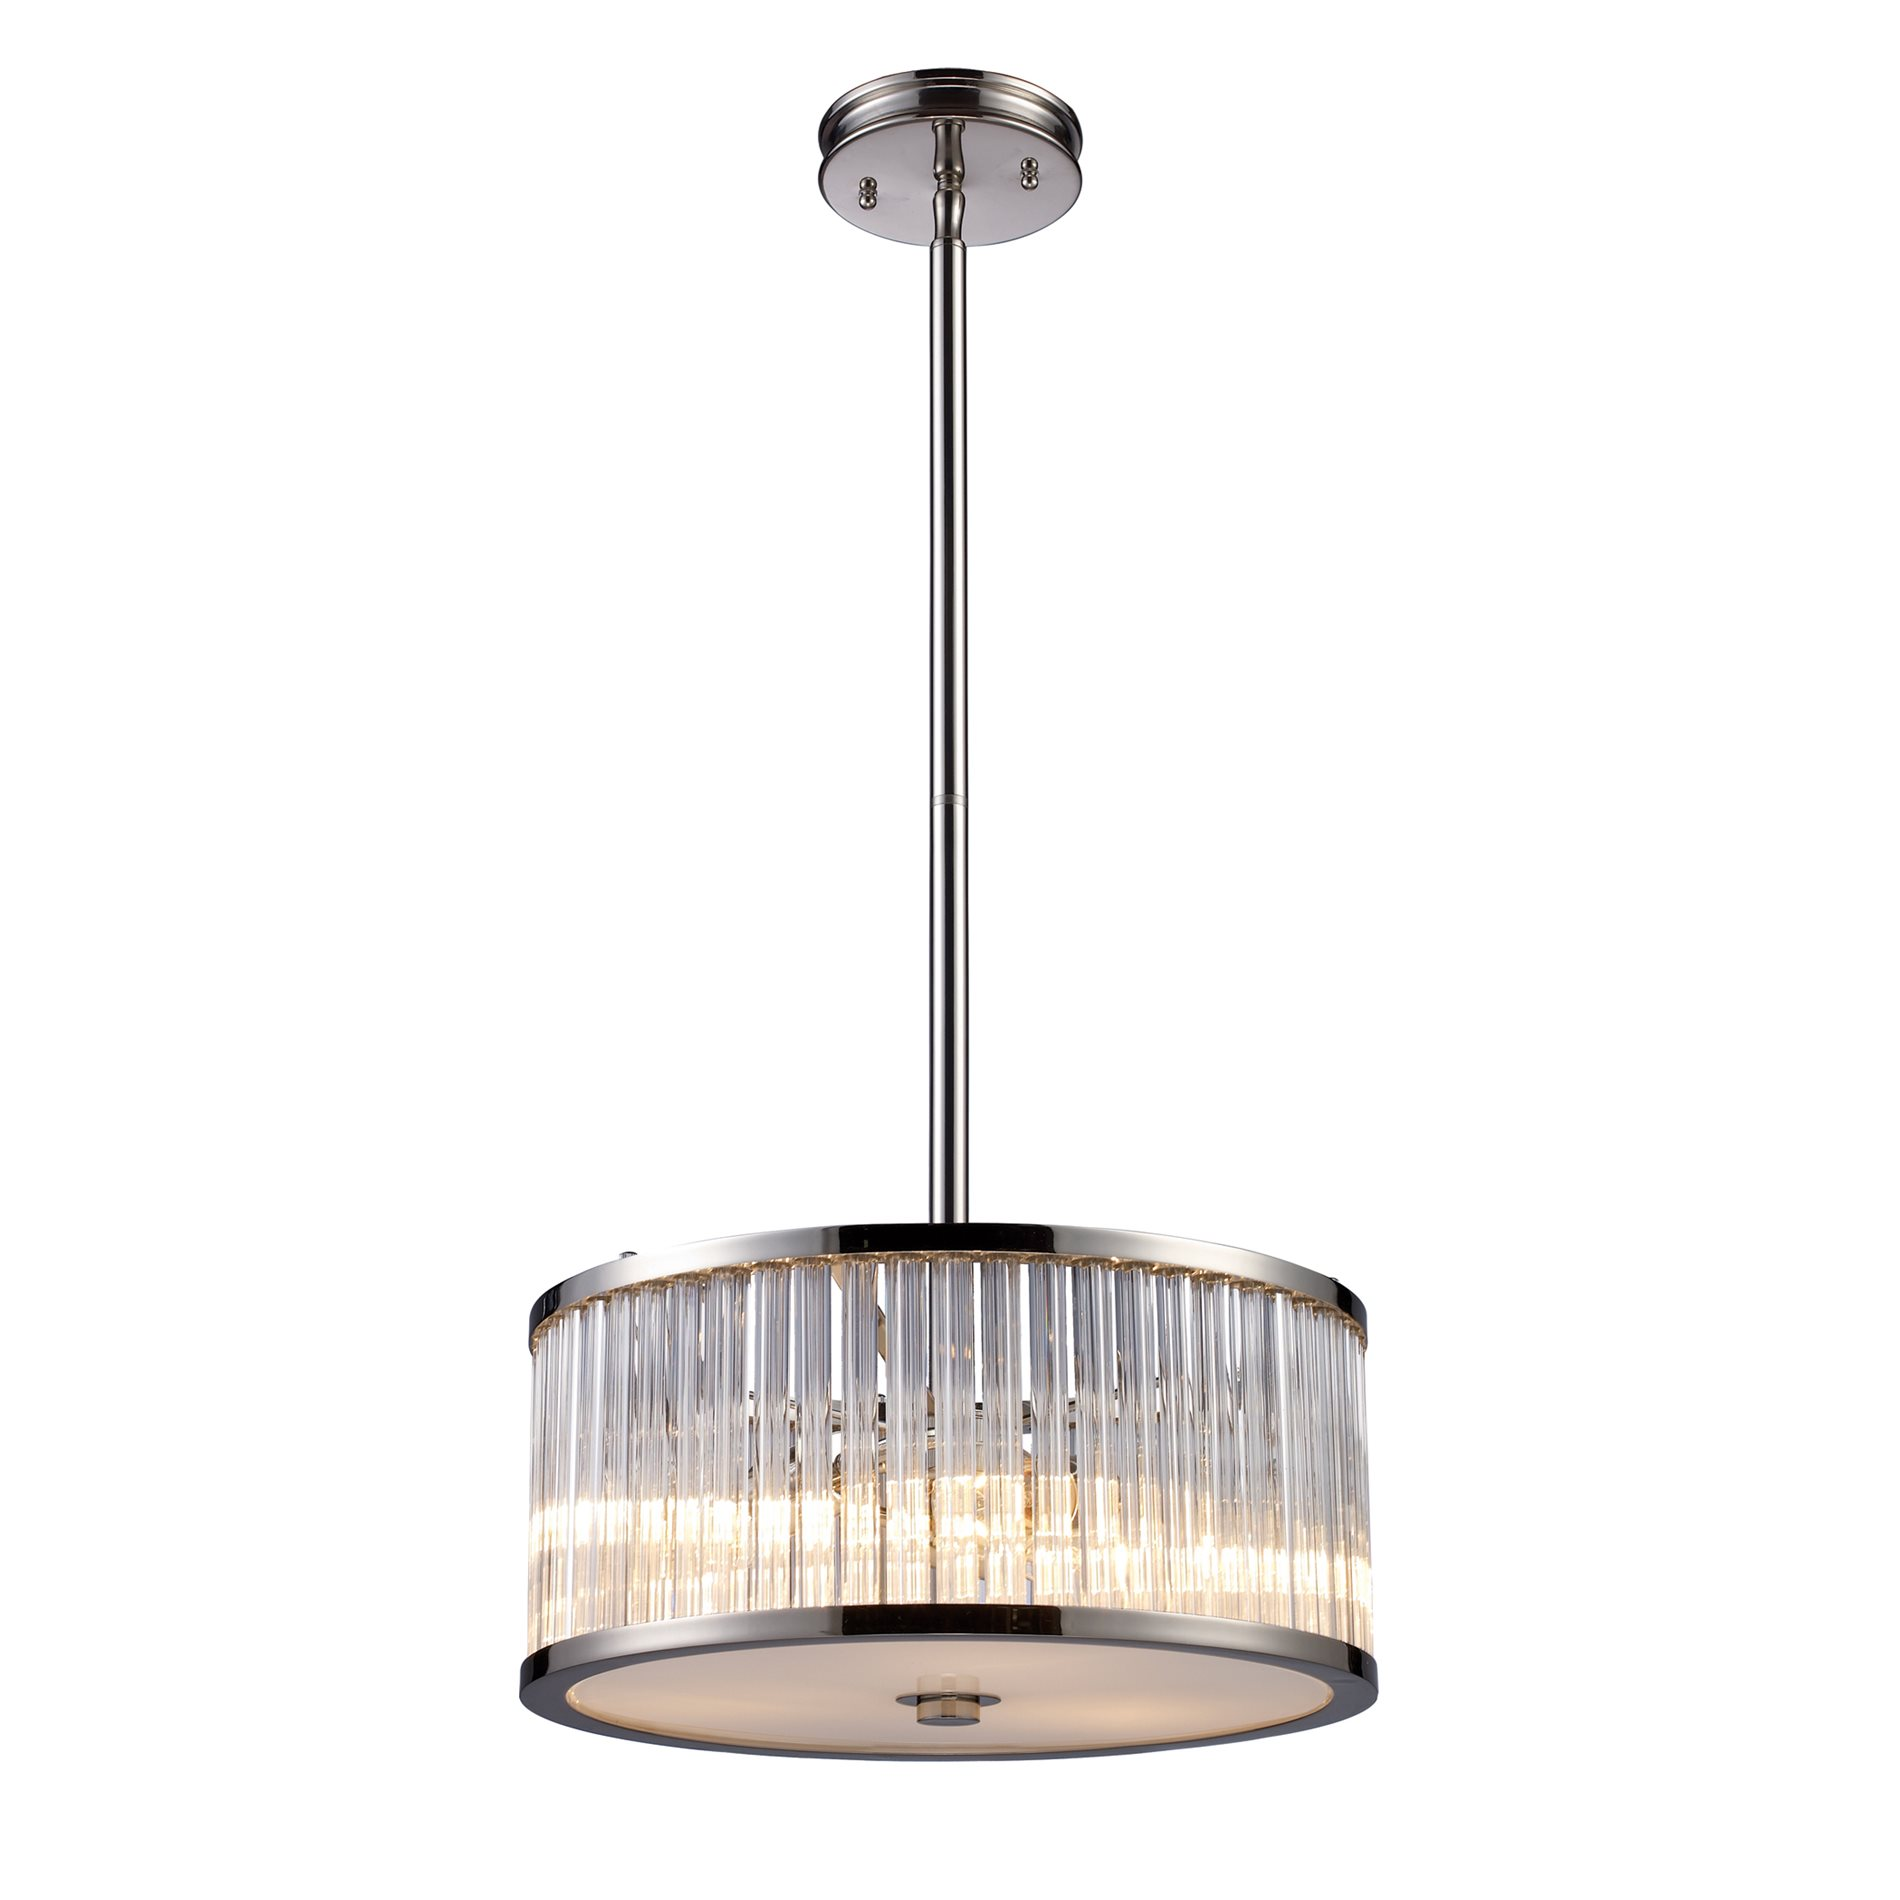 Yosemite Home Decor Braxton Contemporary Drum Pendant Light Xkle 3 82101